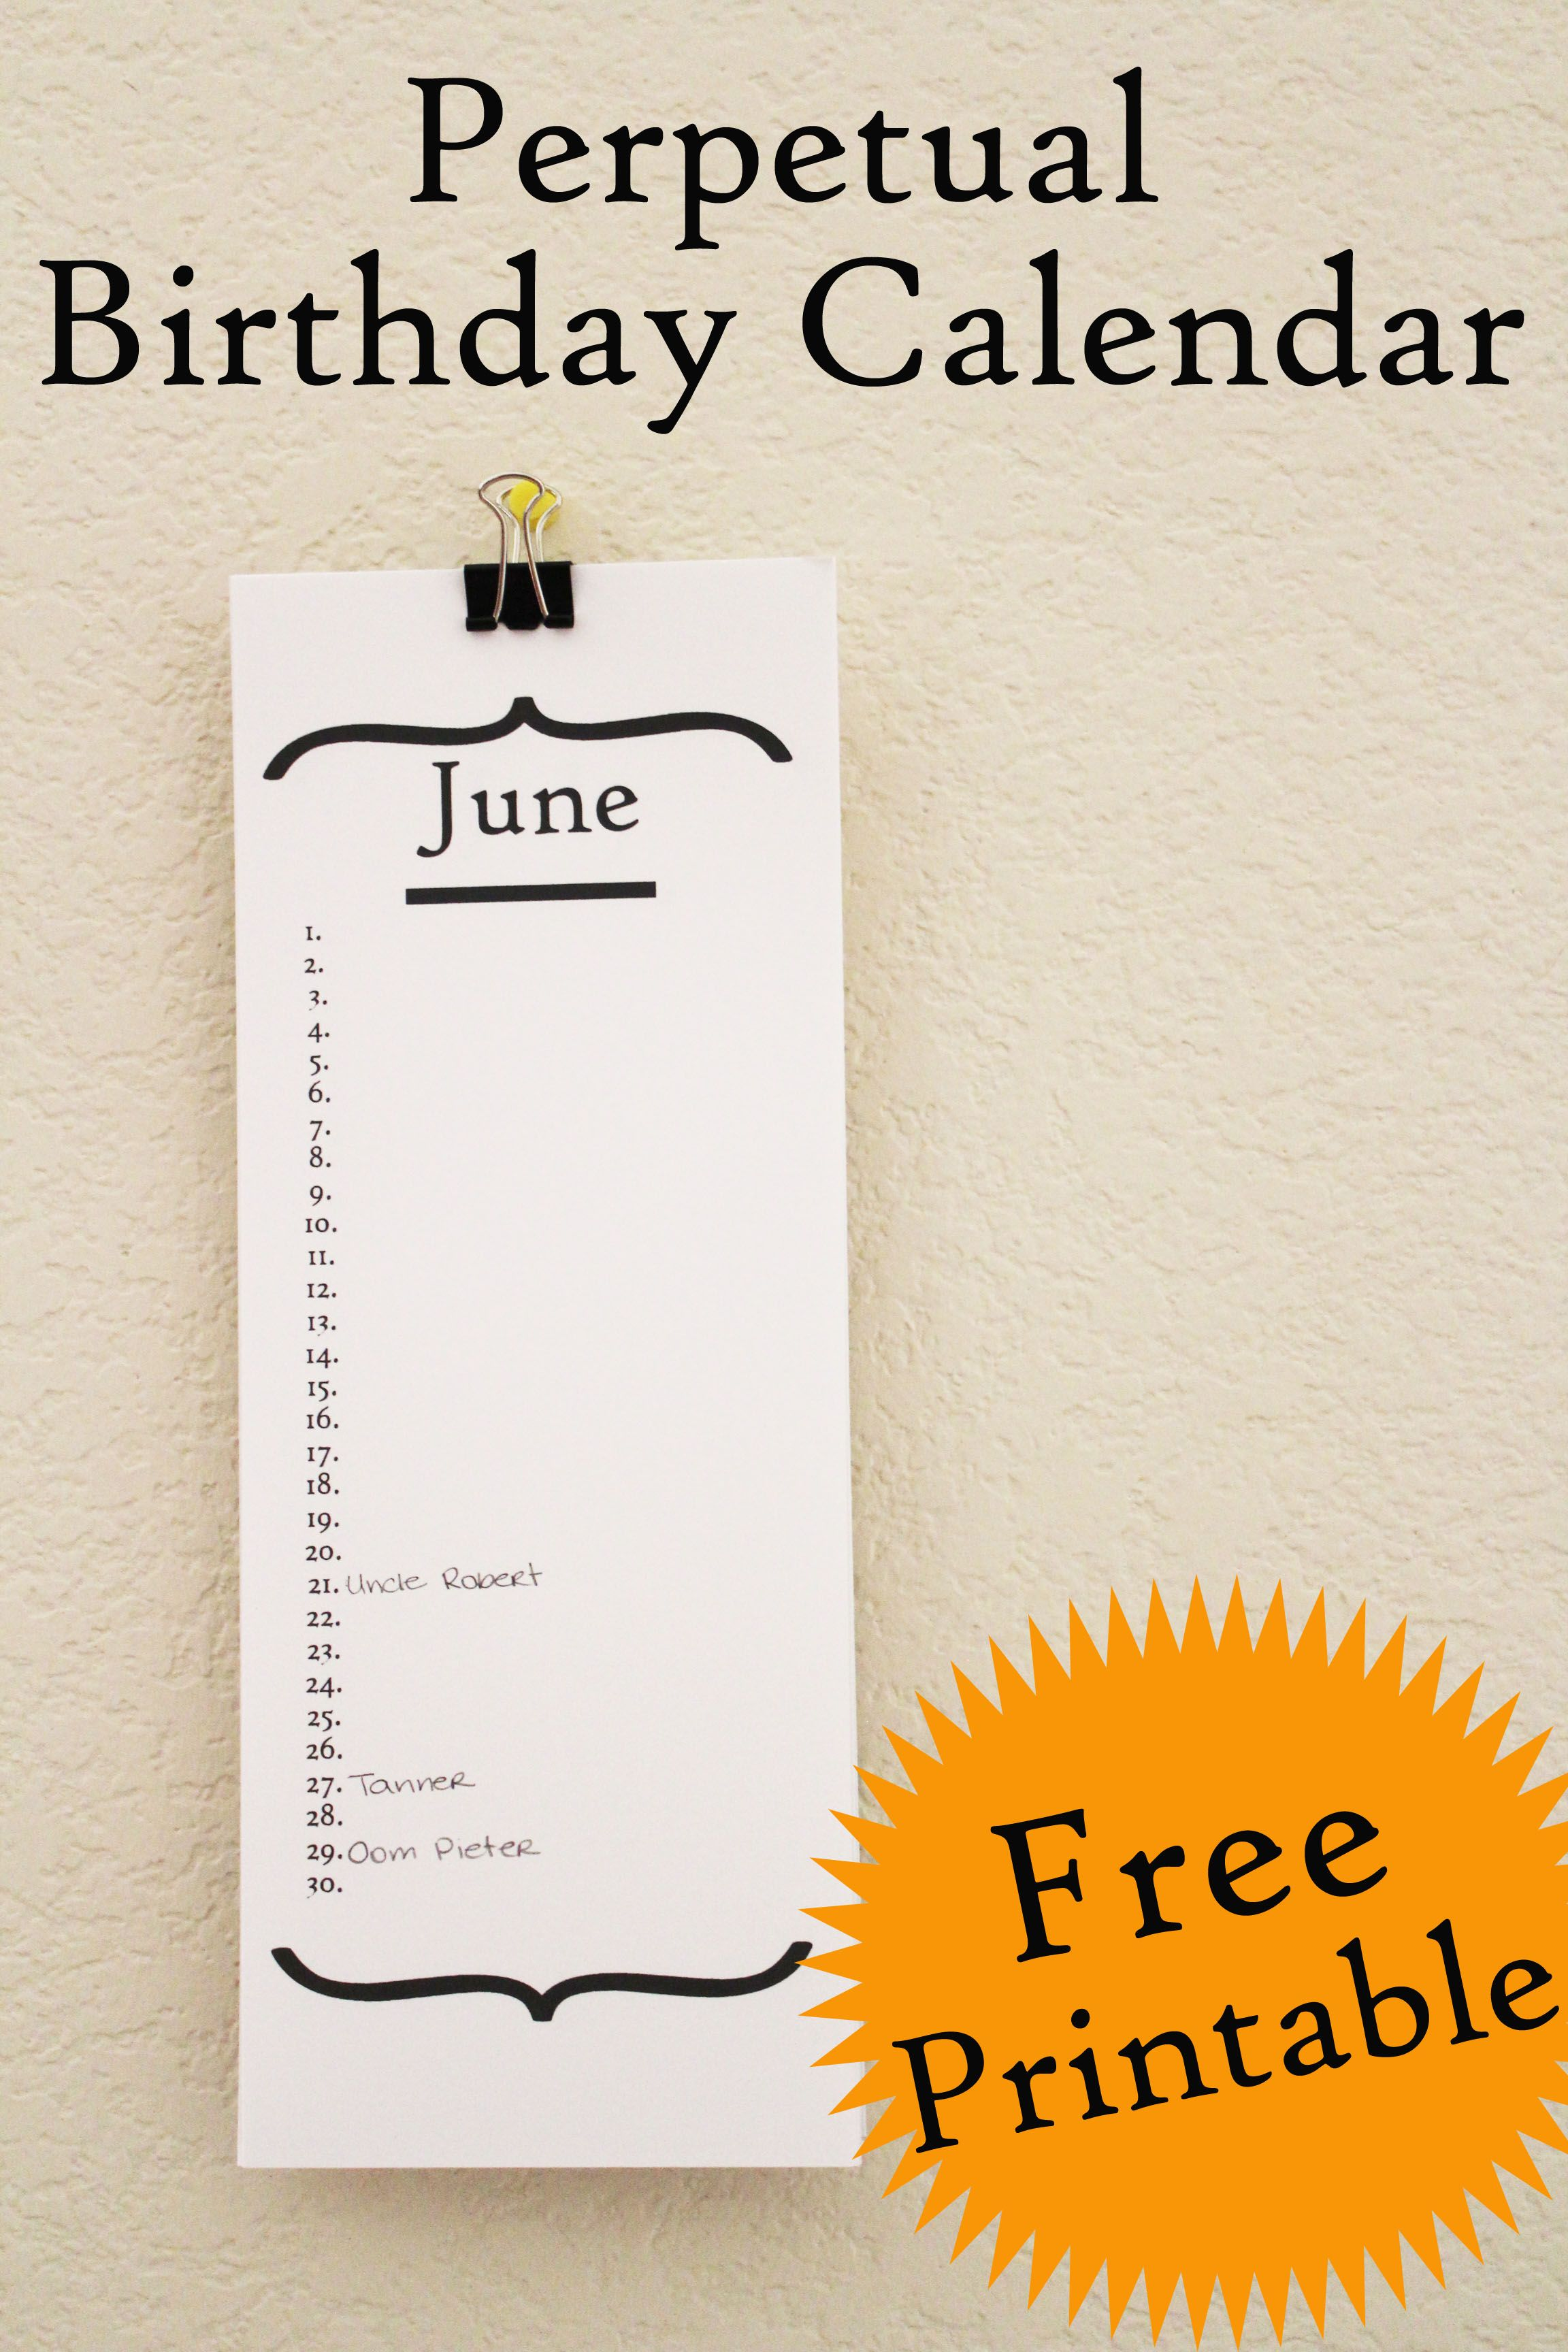 image relating to Free Printable Perpetual Birthday Calendar Template identify Absolutely free Printable Perpetual Birthday Calendar Print It